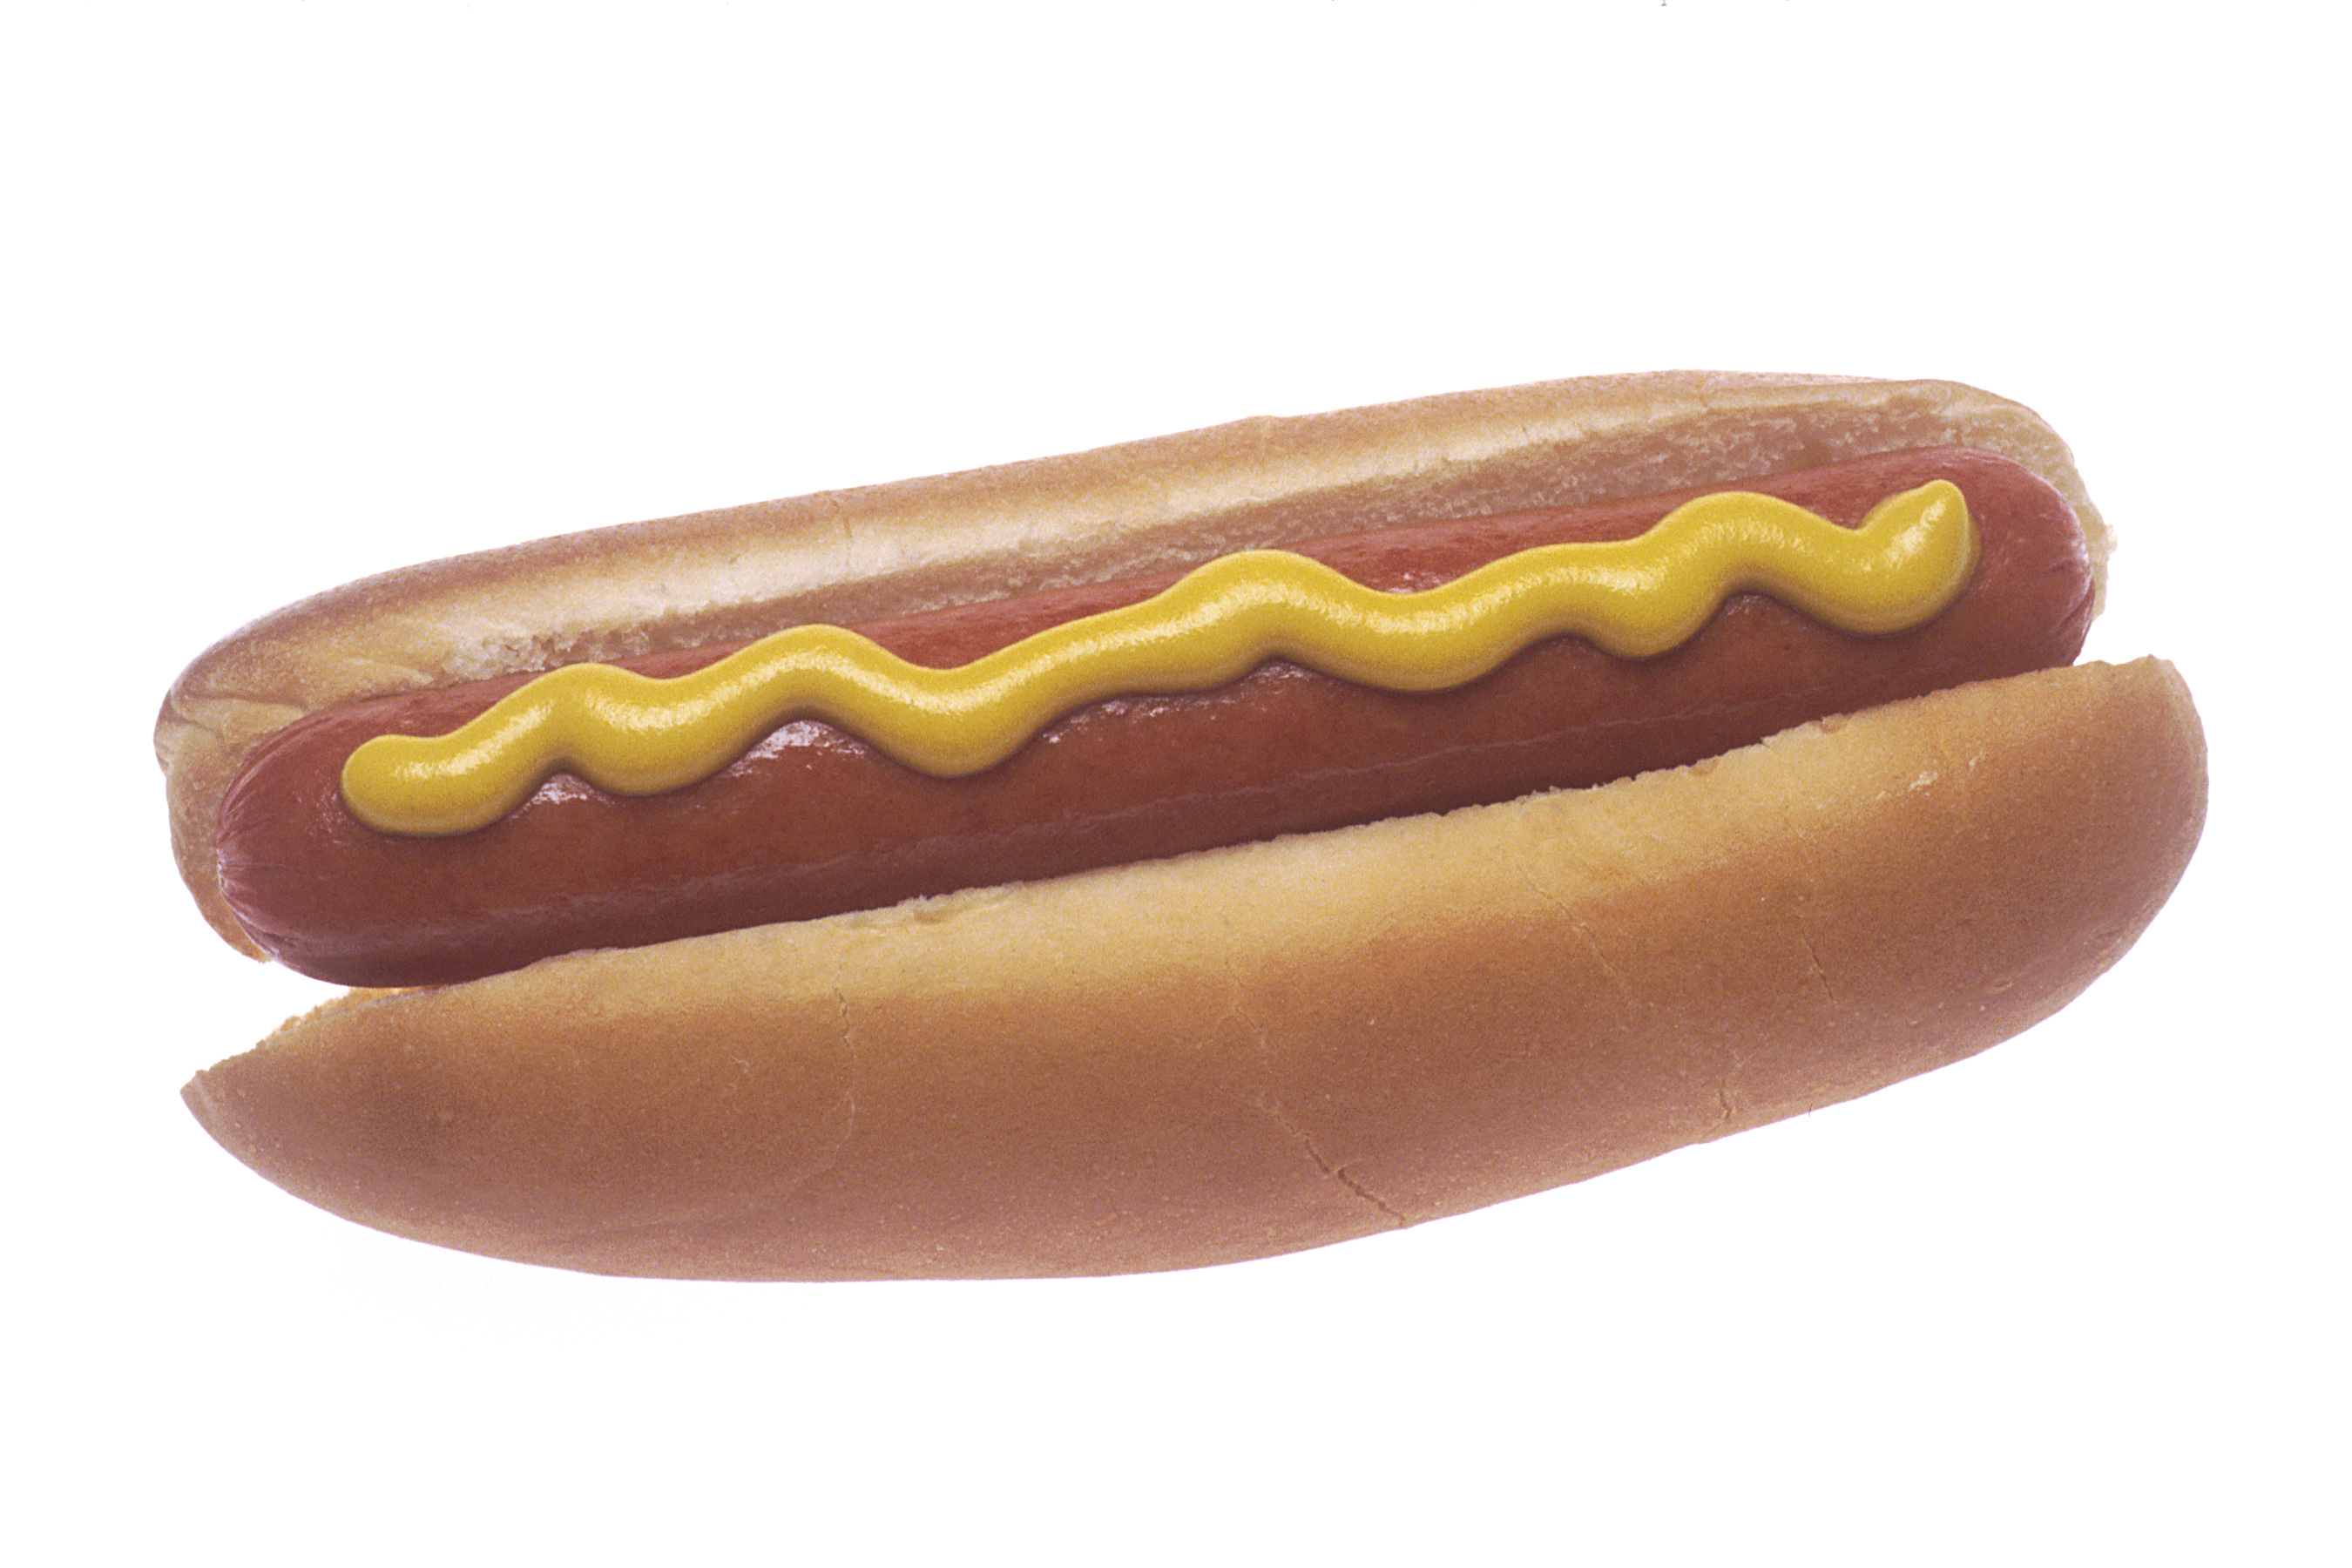 http://upload.wikimedia.org/wikipedia/commons/3/3a/NCI_Visuals_Food_Hot_Dog.jpg